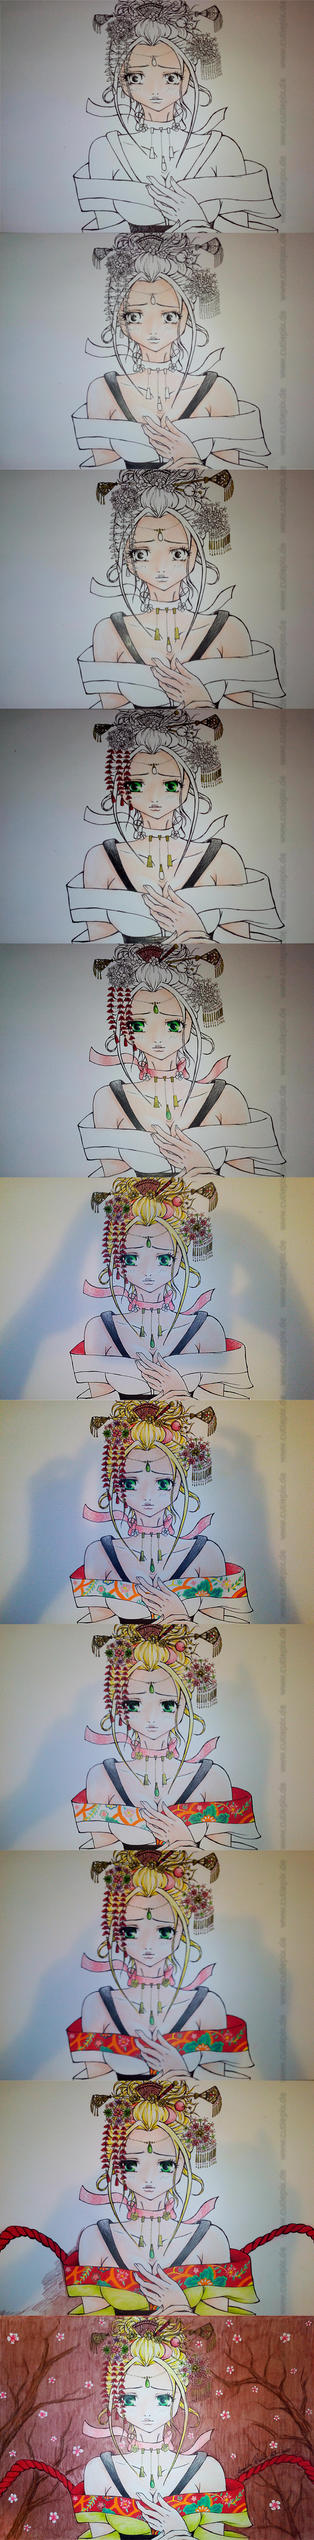 Cutiepix sad blonde Geisha by Cutiepix